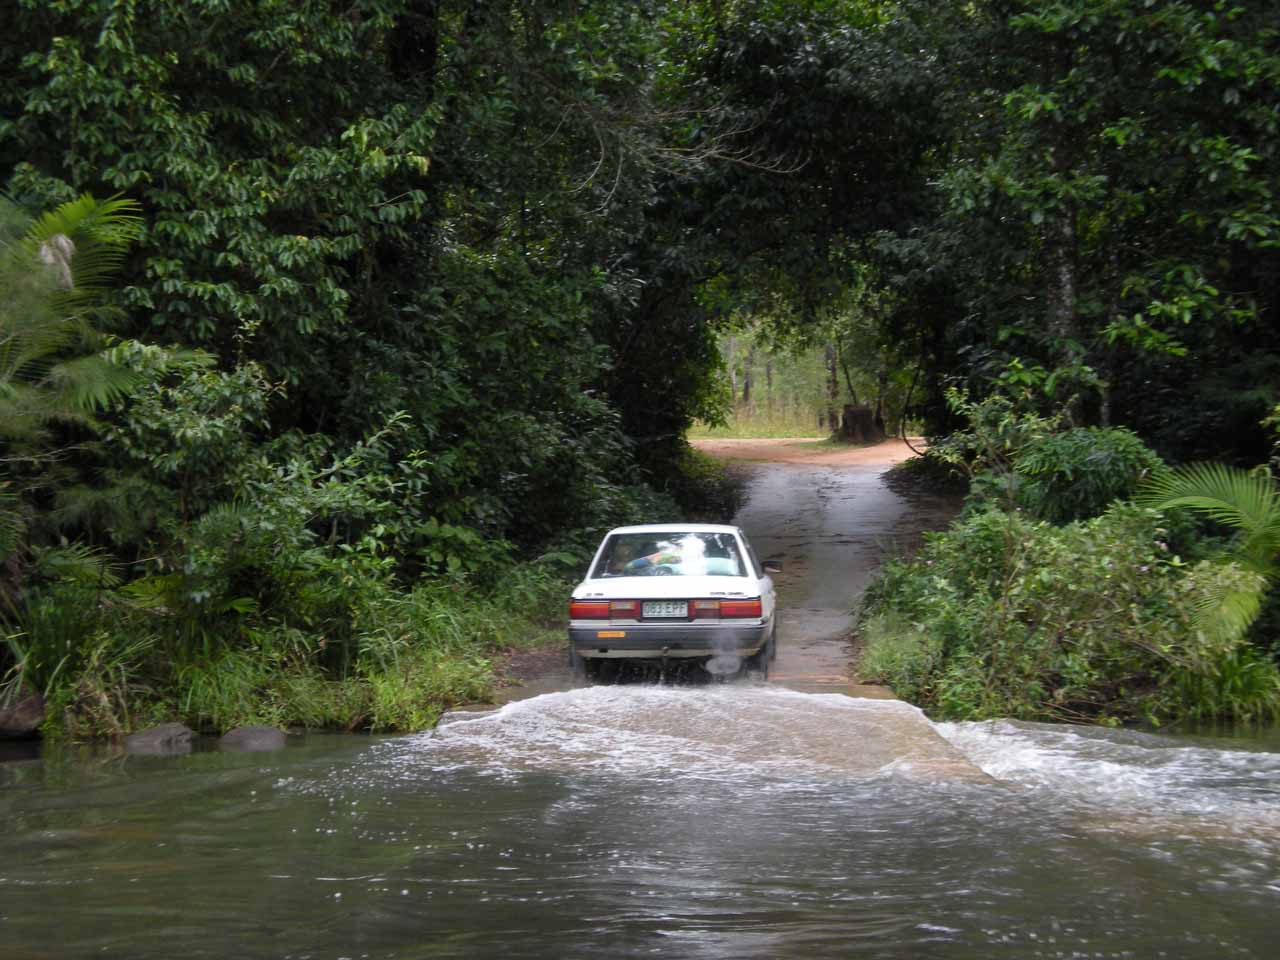 If that car can cross Waterview Creek, so can we, right?